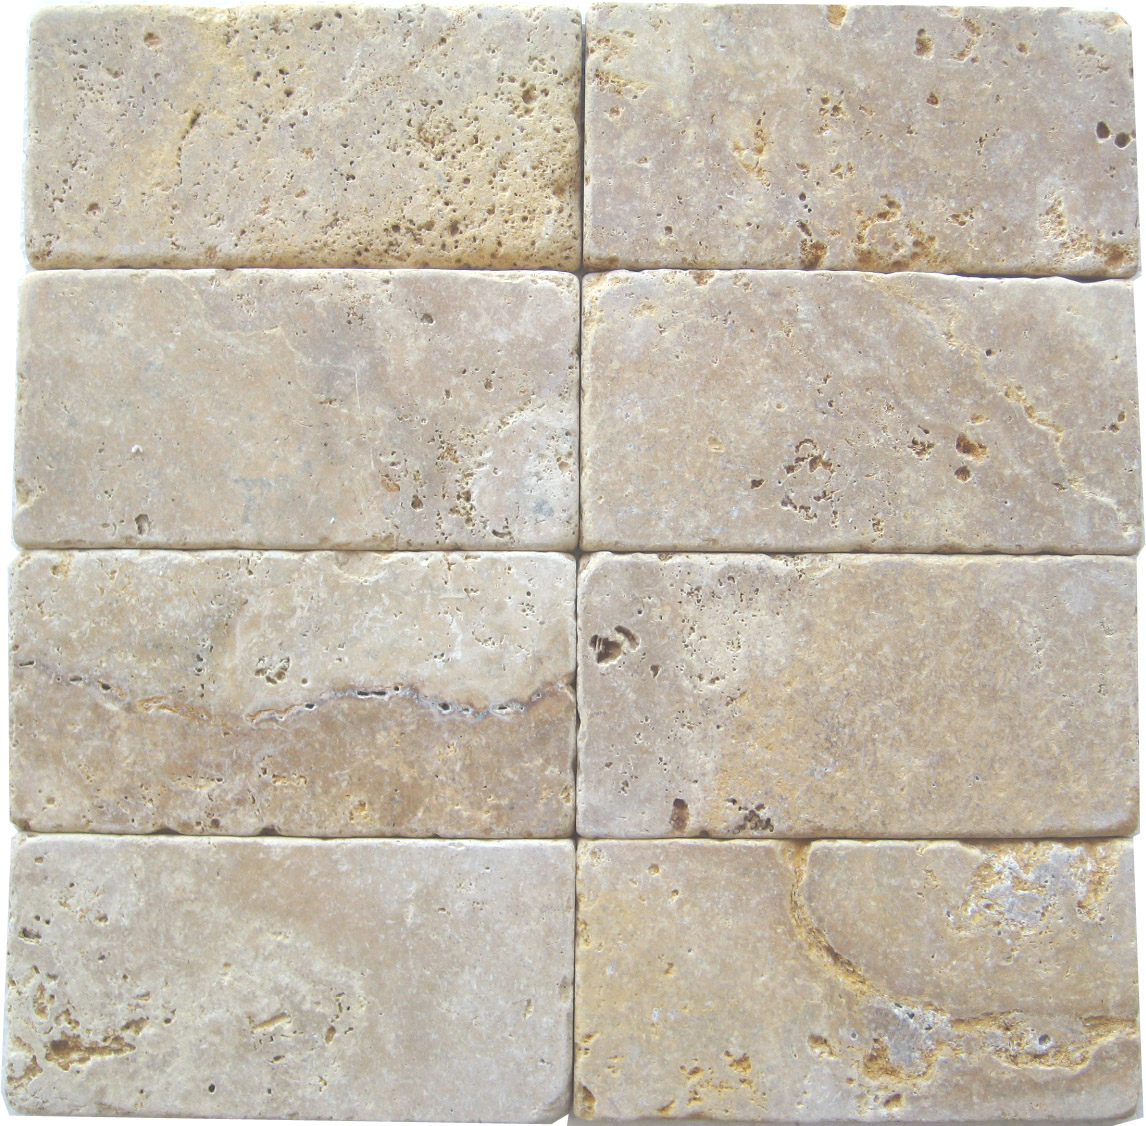 Golden sienna travertine tumbled tiles e36 3000 in south florida nalboor Ceramic stone tile